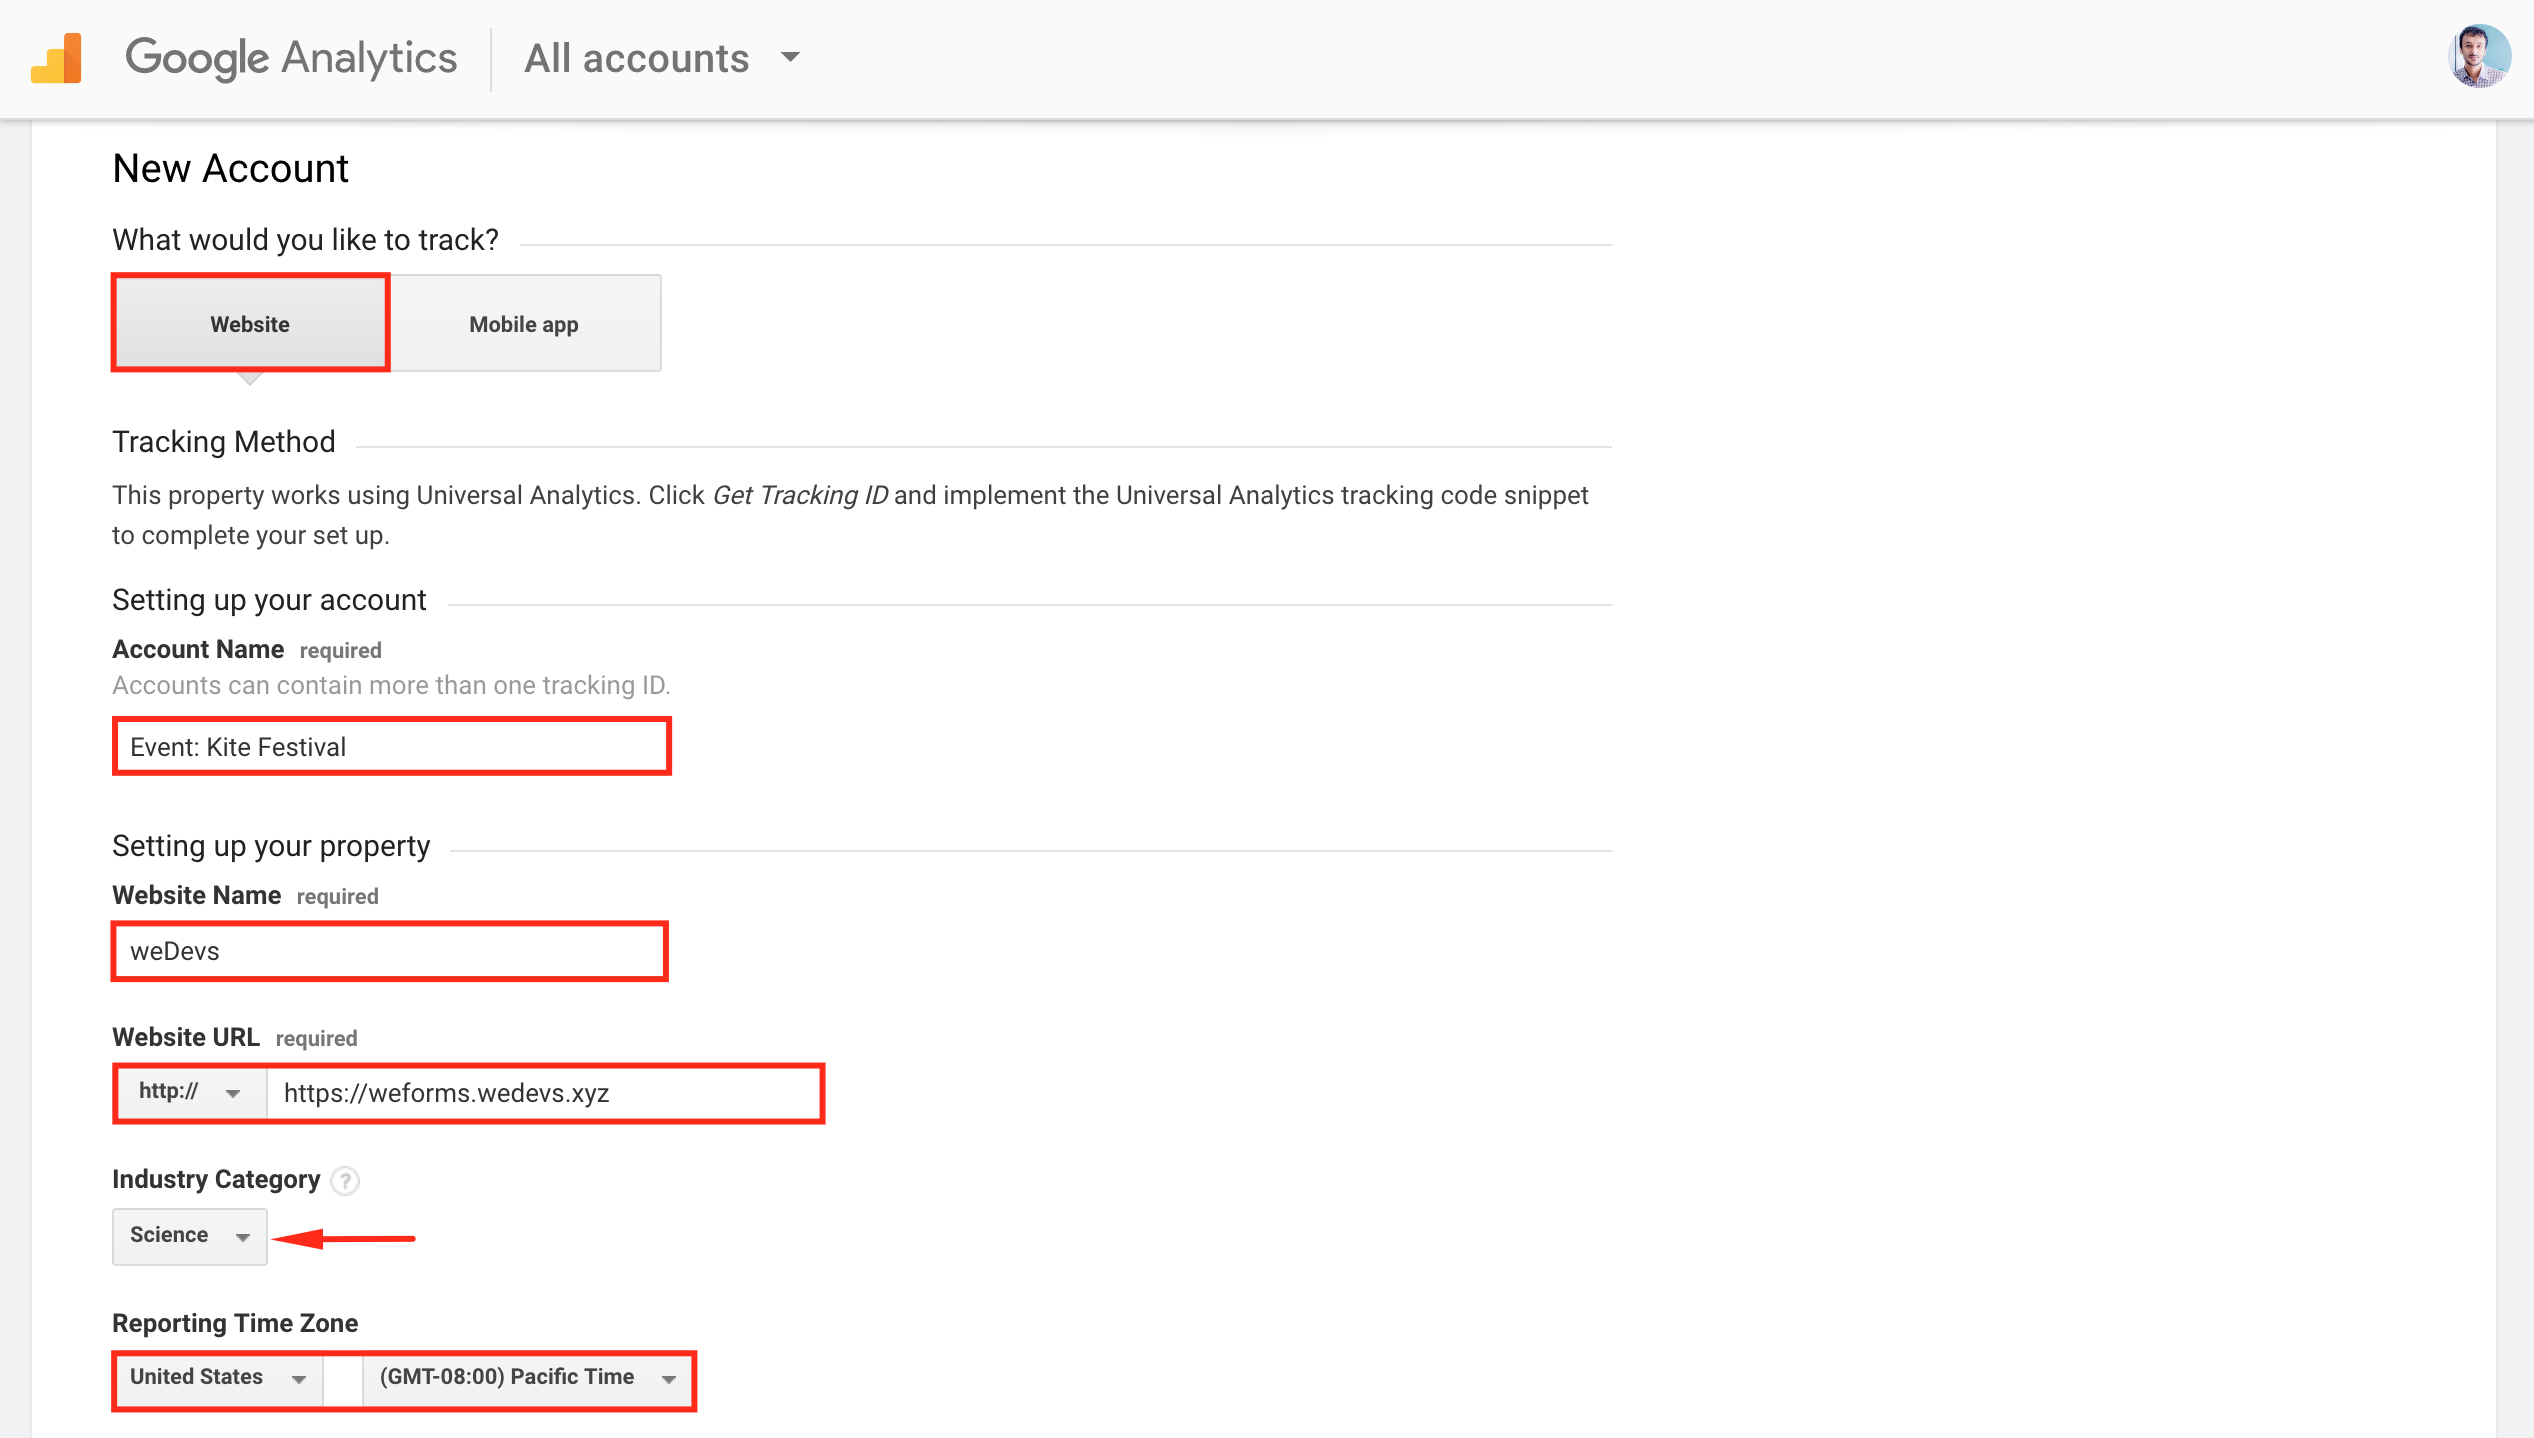 Creating new account for analytics